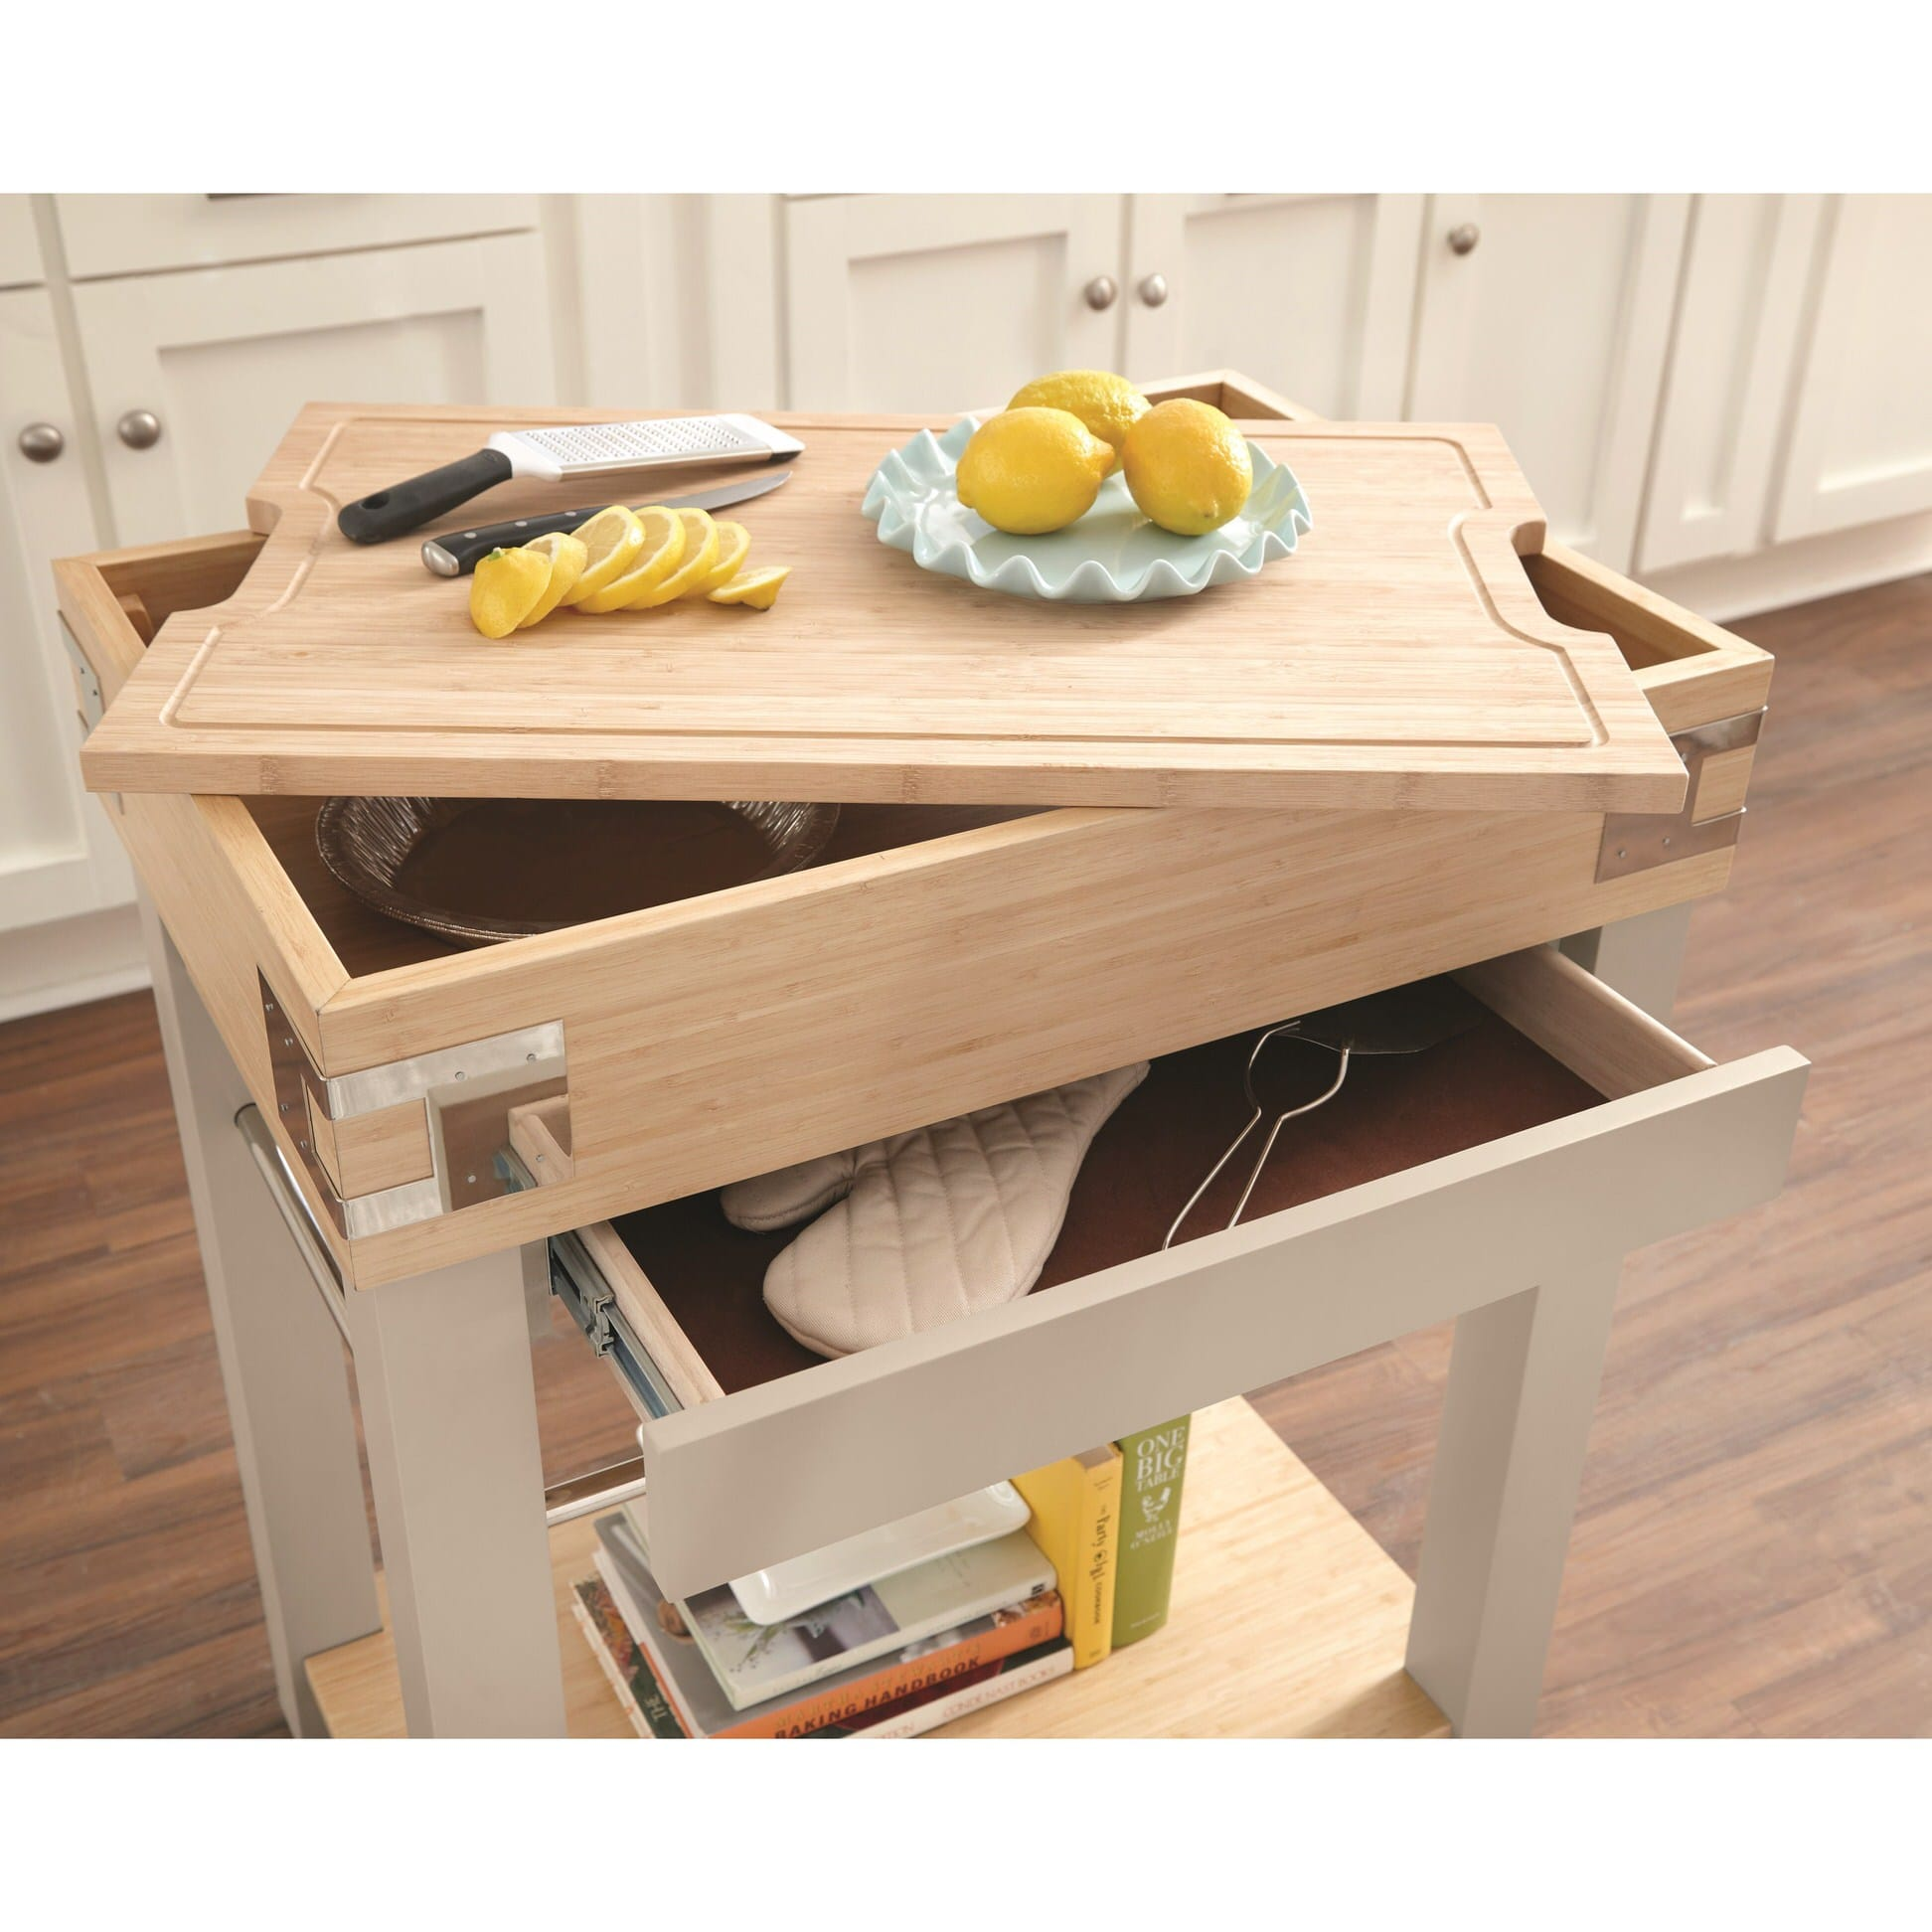 102988 Sand Kitchen Island w/ Removable Cutting Board by Scott Living